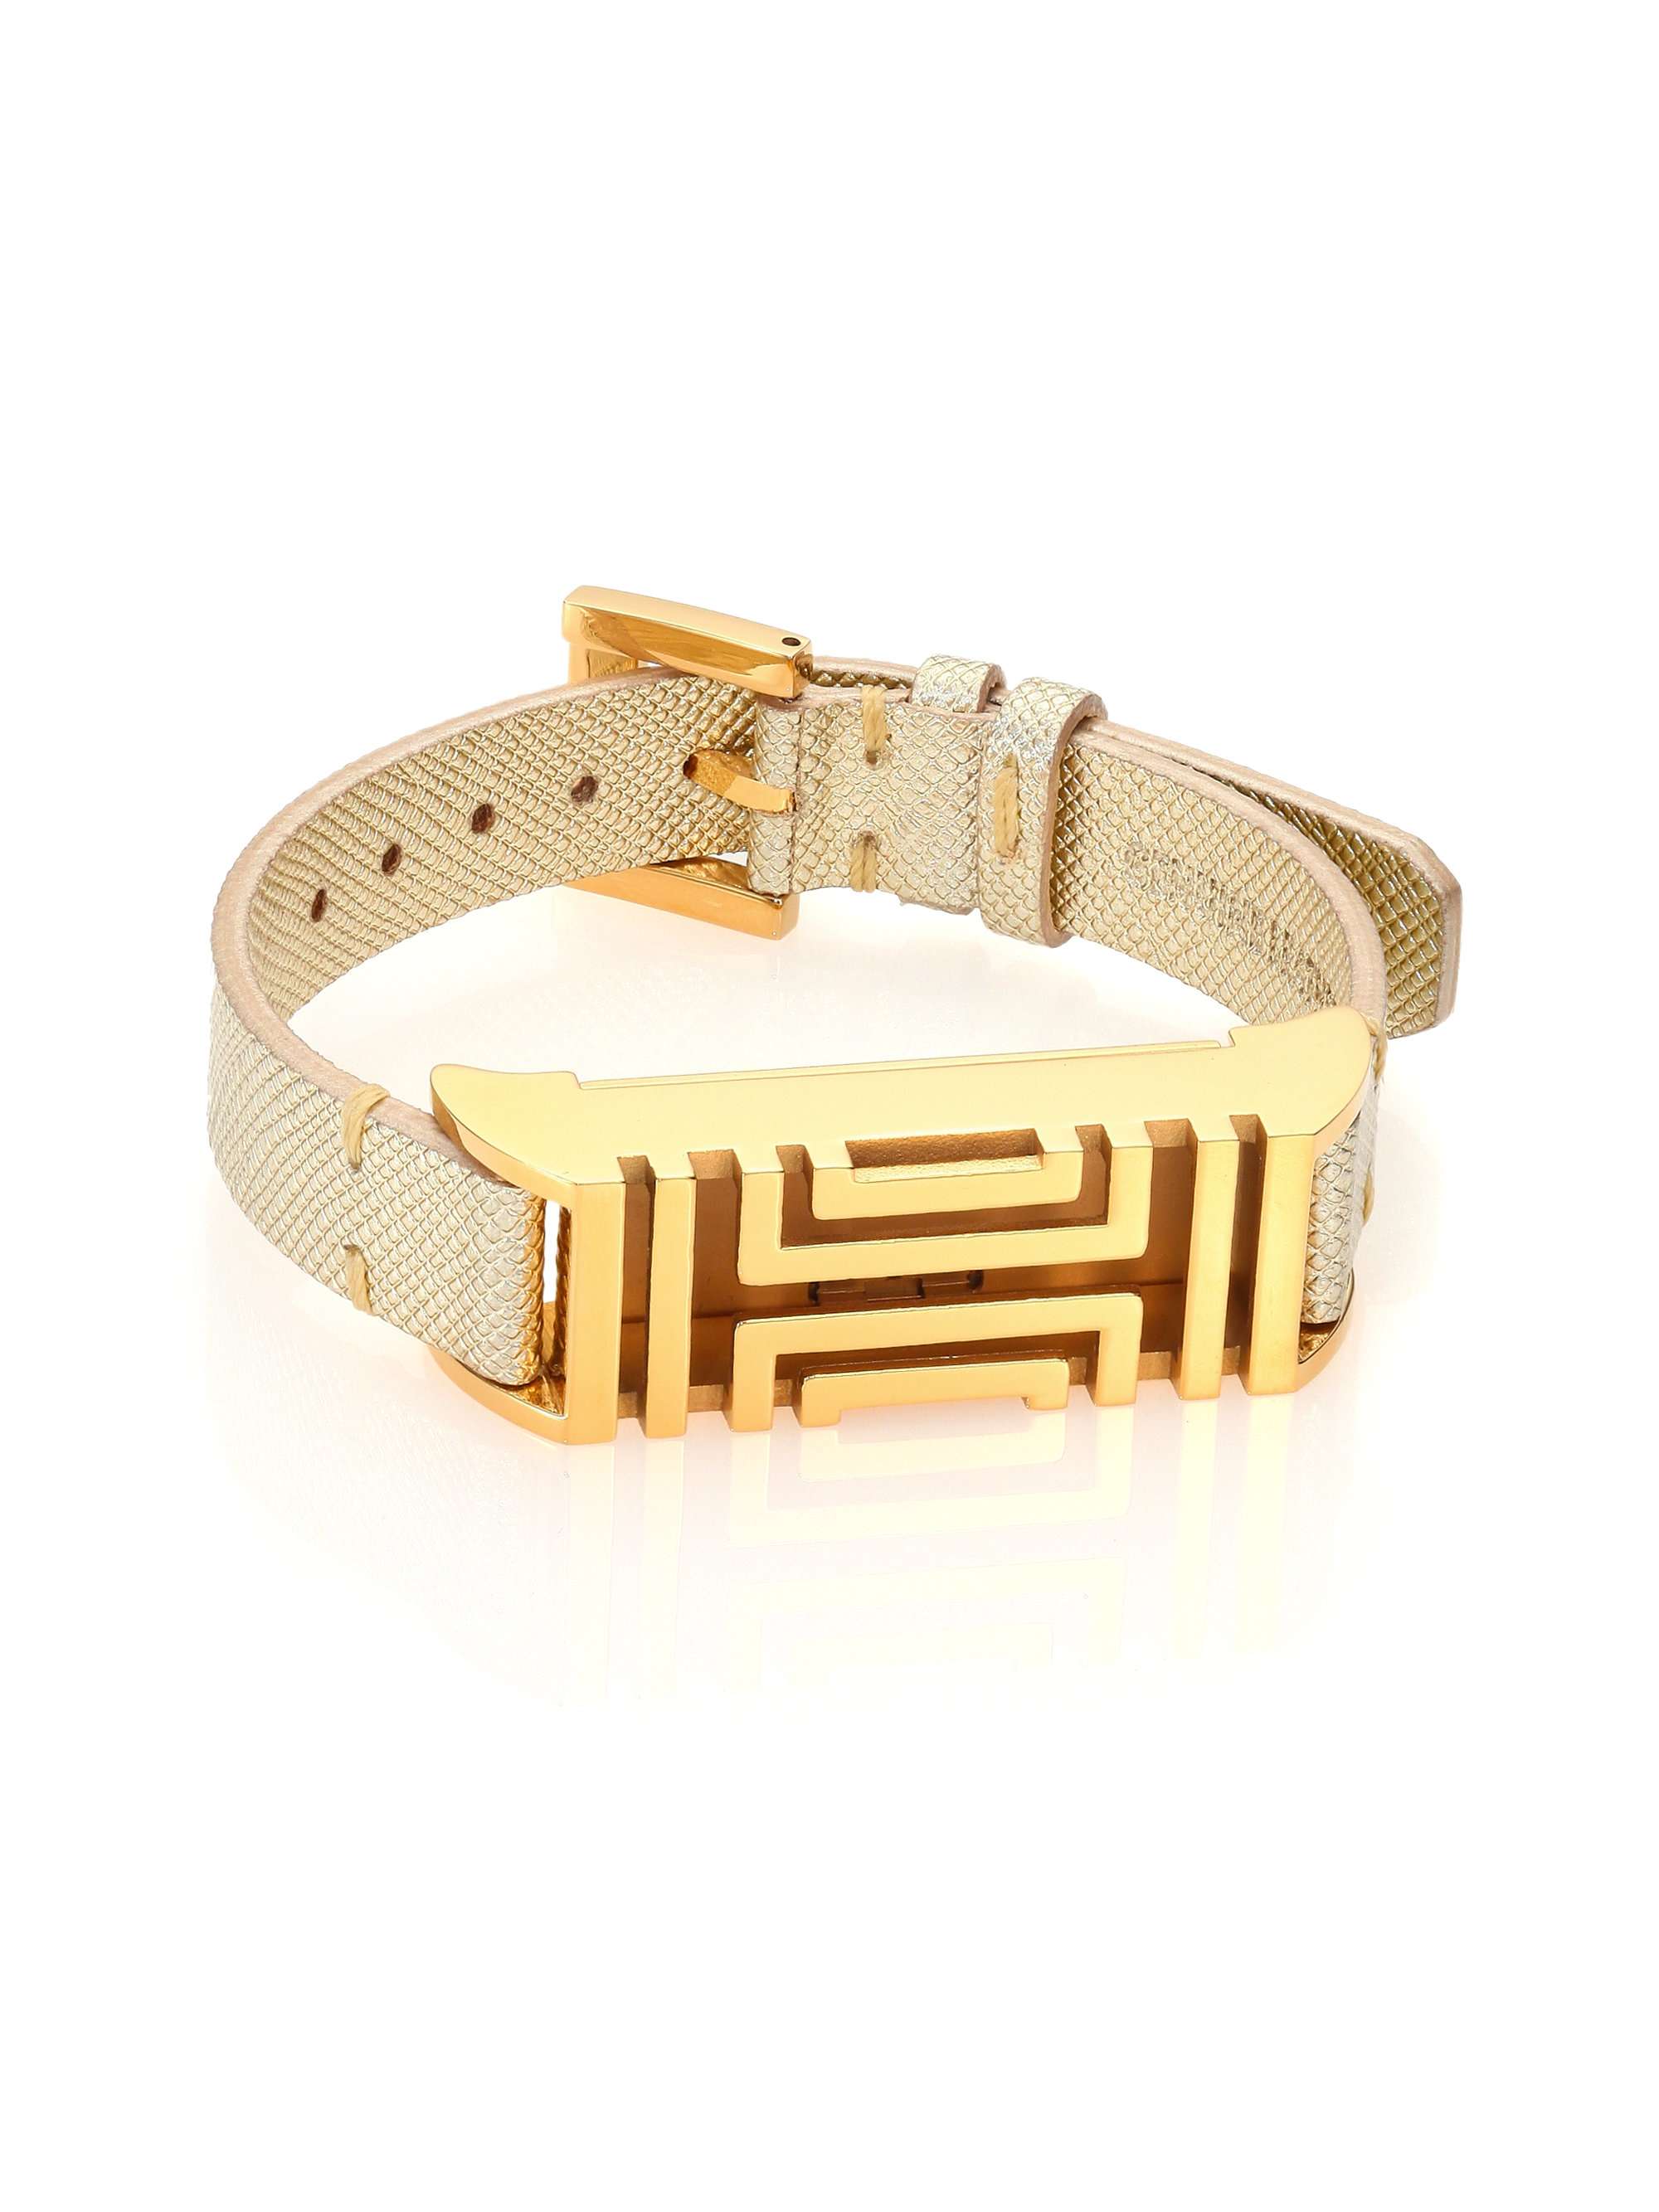 burch for fitbit metallic textured leather bracelet